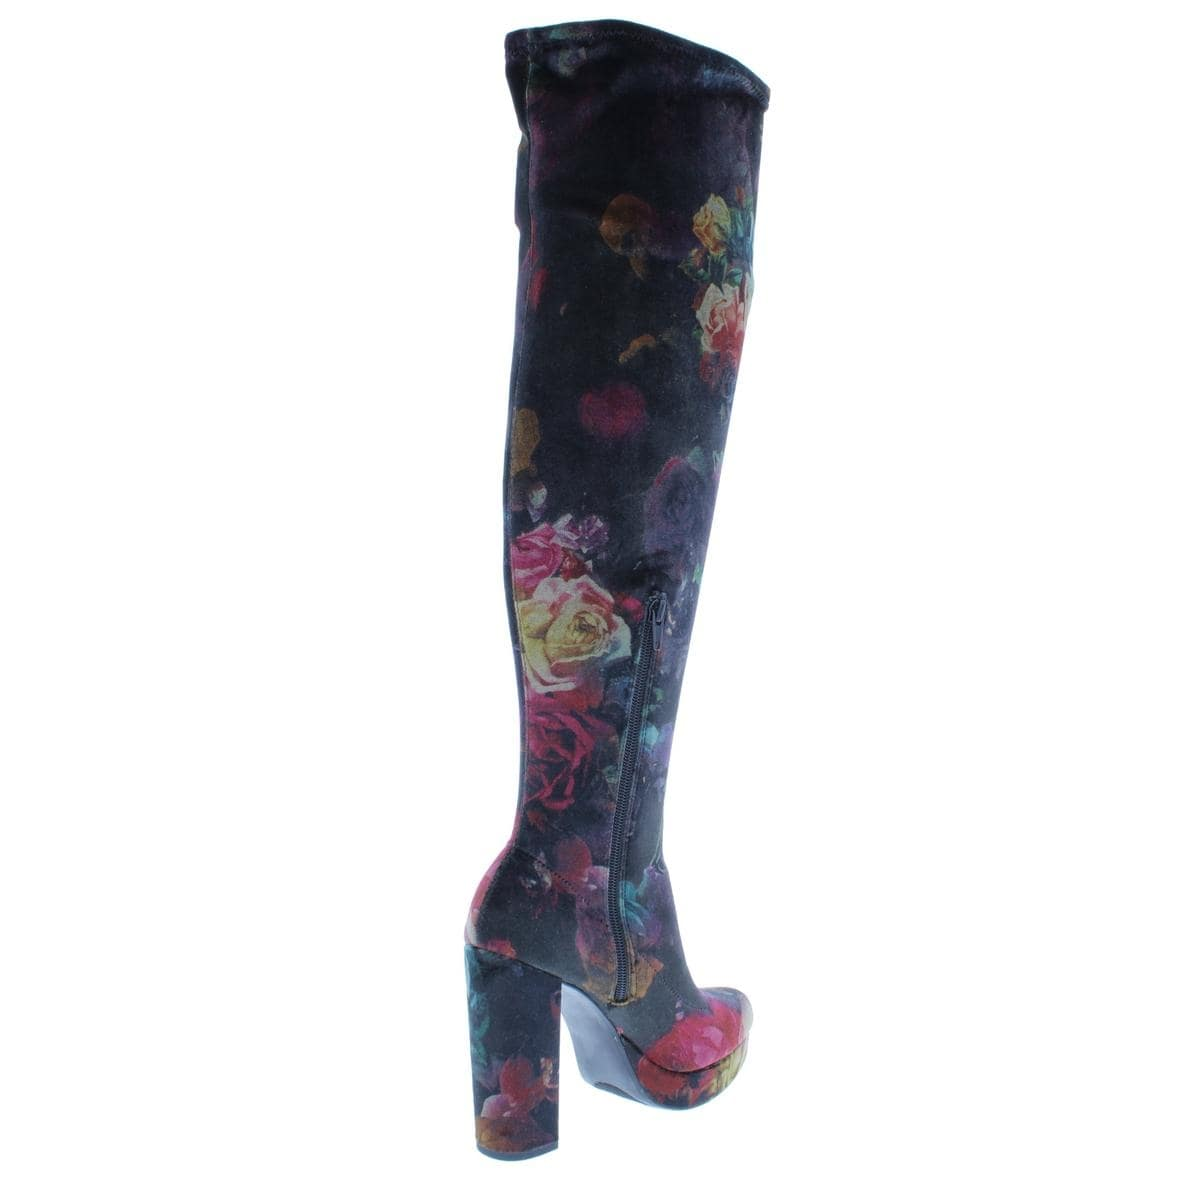 7539eb91b8d Shop Madden Girl Womens Groupie Over-The-Knee Boots - Free Shipping On  Orders Over  45 - Overstock - 23573321